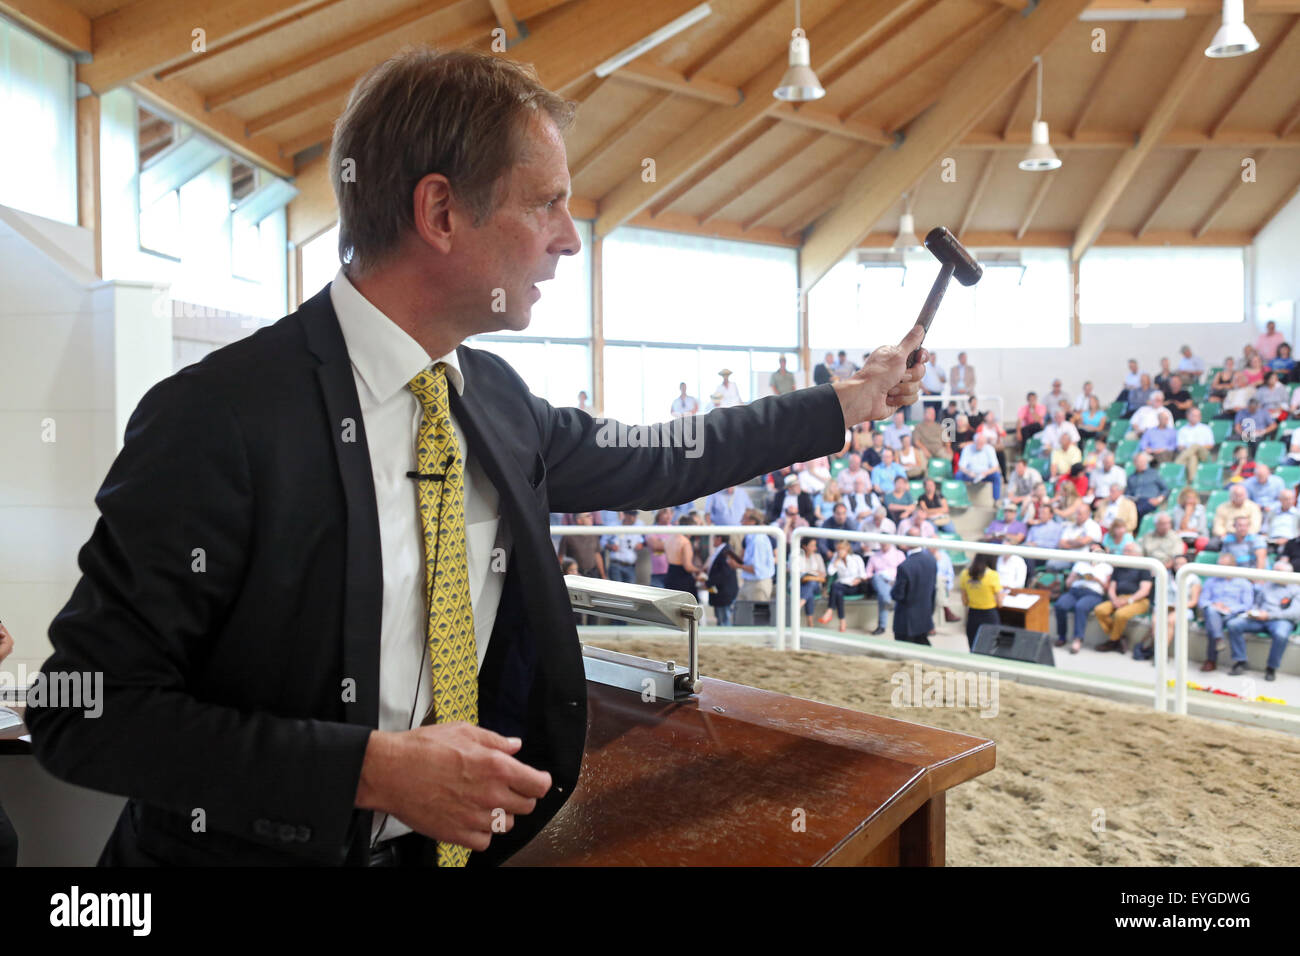 Iffezheim, Germany, auctioneer Daniel Delius at work - Stock Image